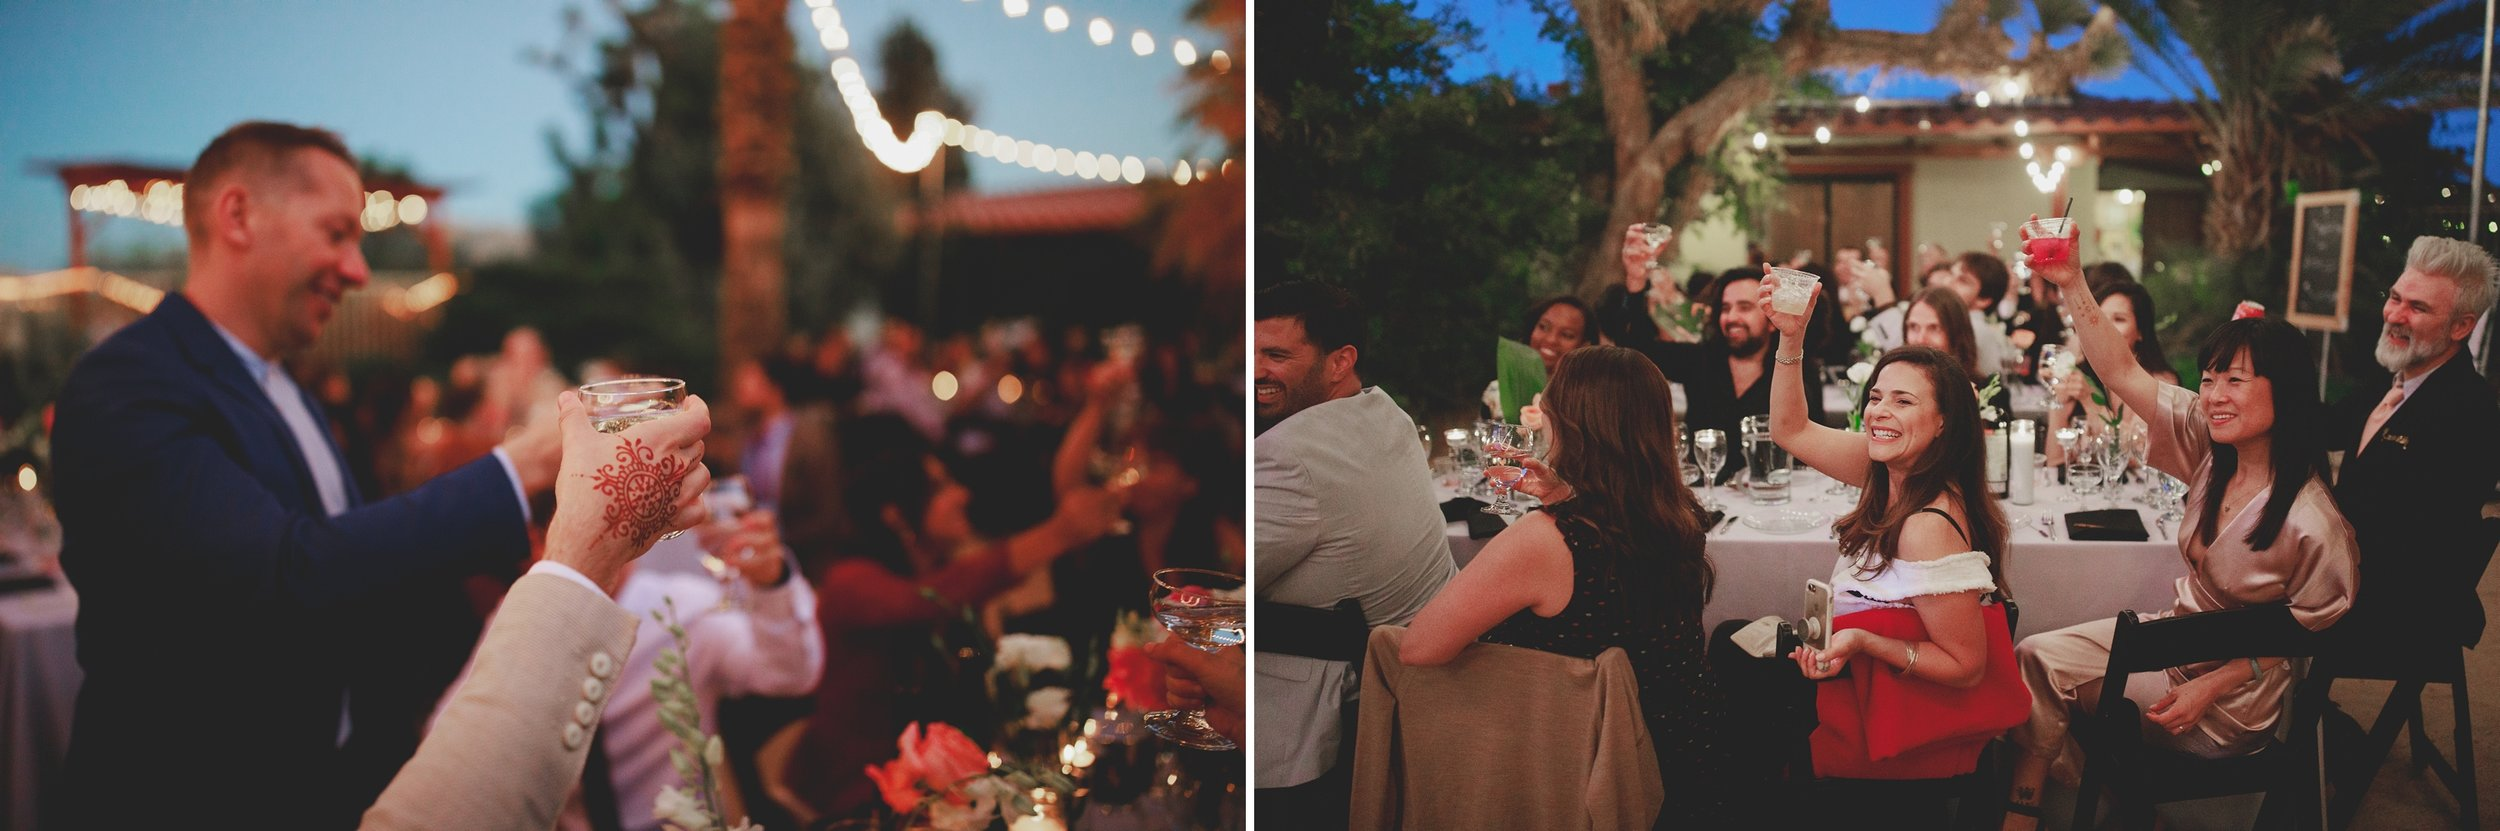 amanda_vanvels_joshua_tree_inn_wedding_159.jpg